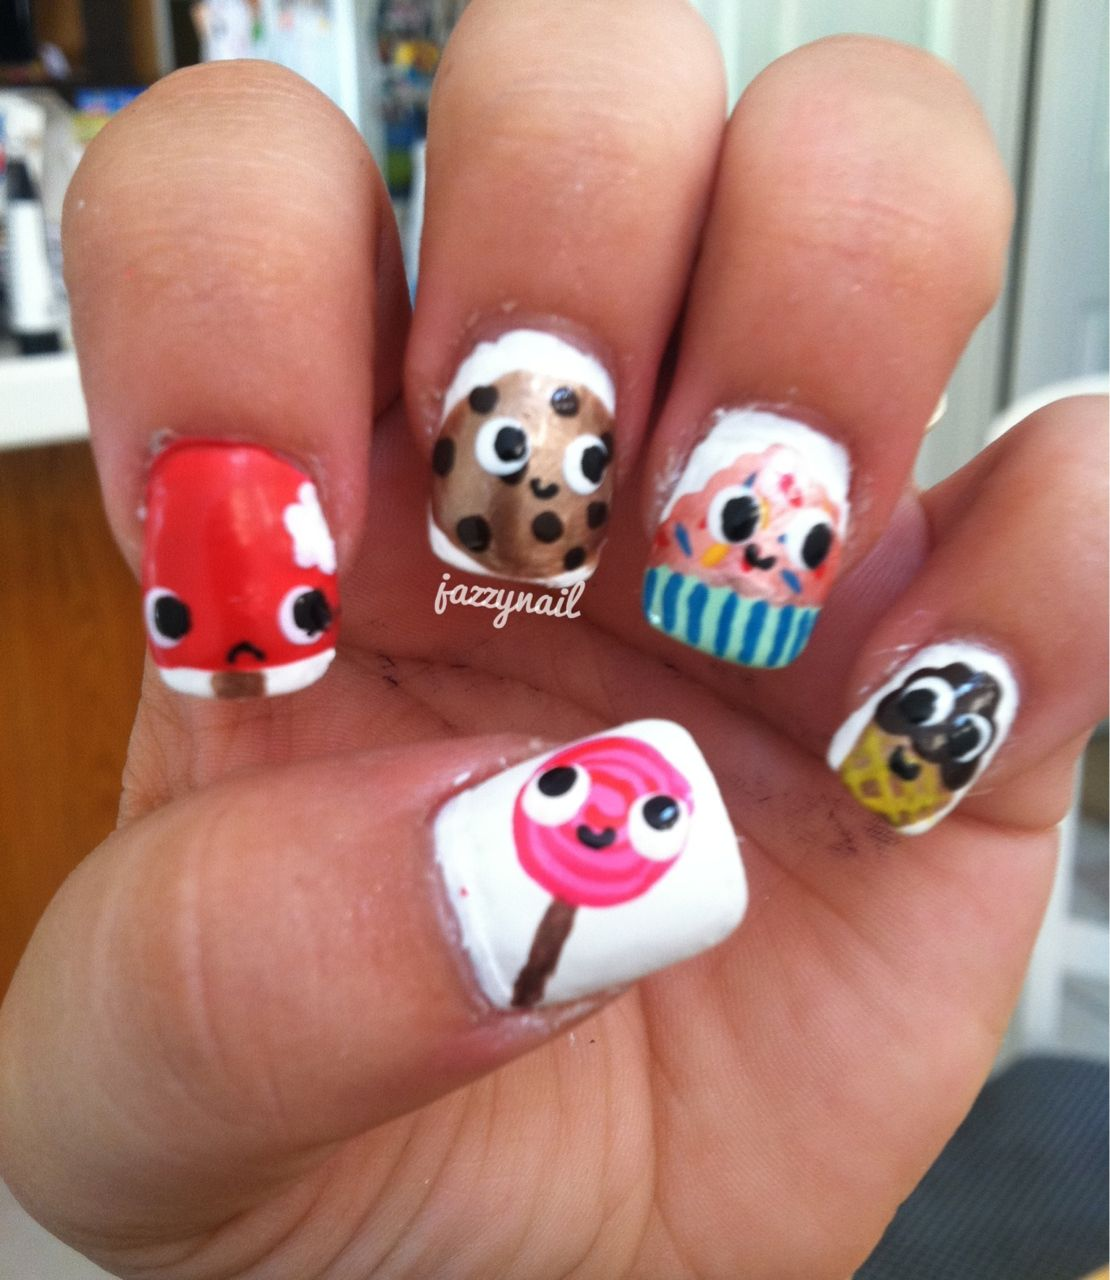 Adorable Nail Art: Pin By Jo-anne Nicholls On Nails